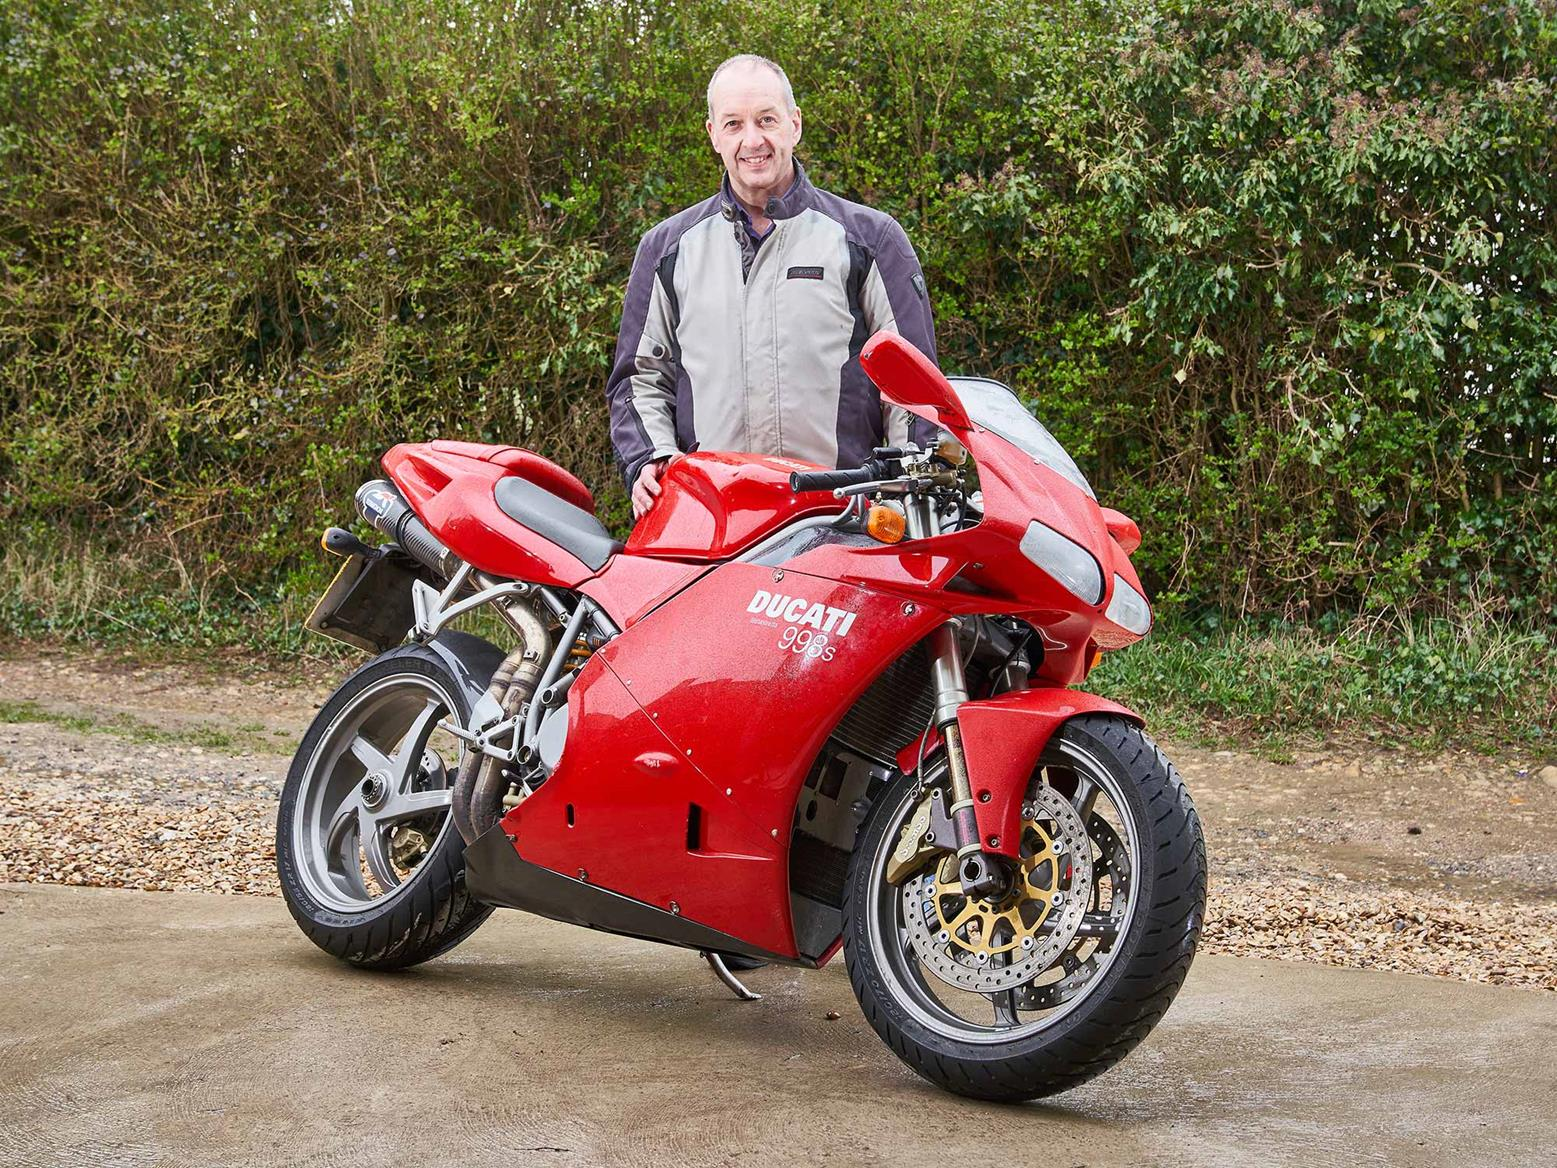 #R5K member Mark Silcox gets reunited with his beloved Ducati 998S after 11 years, following a serious racing accident